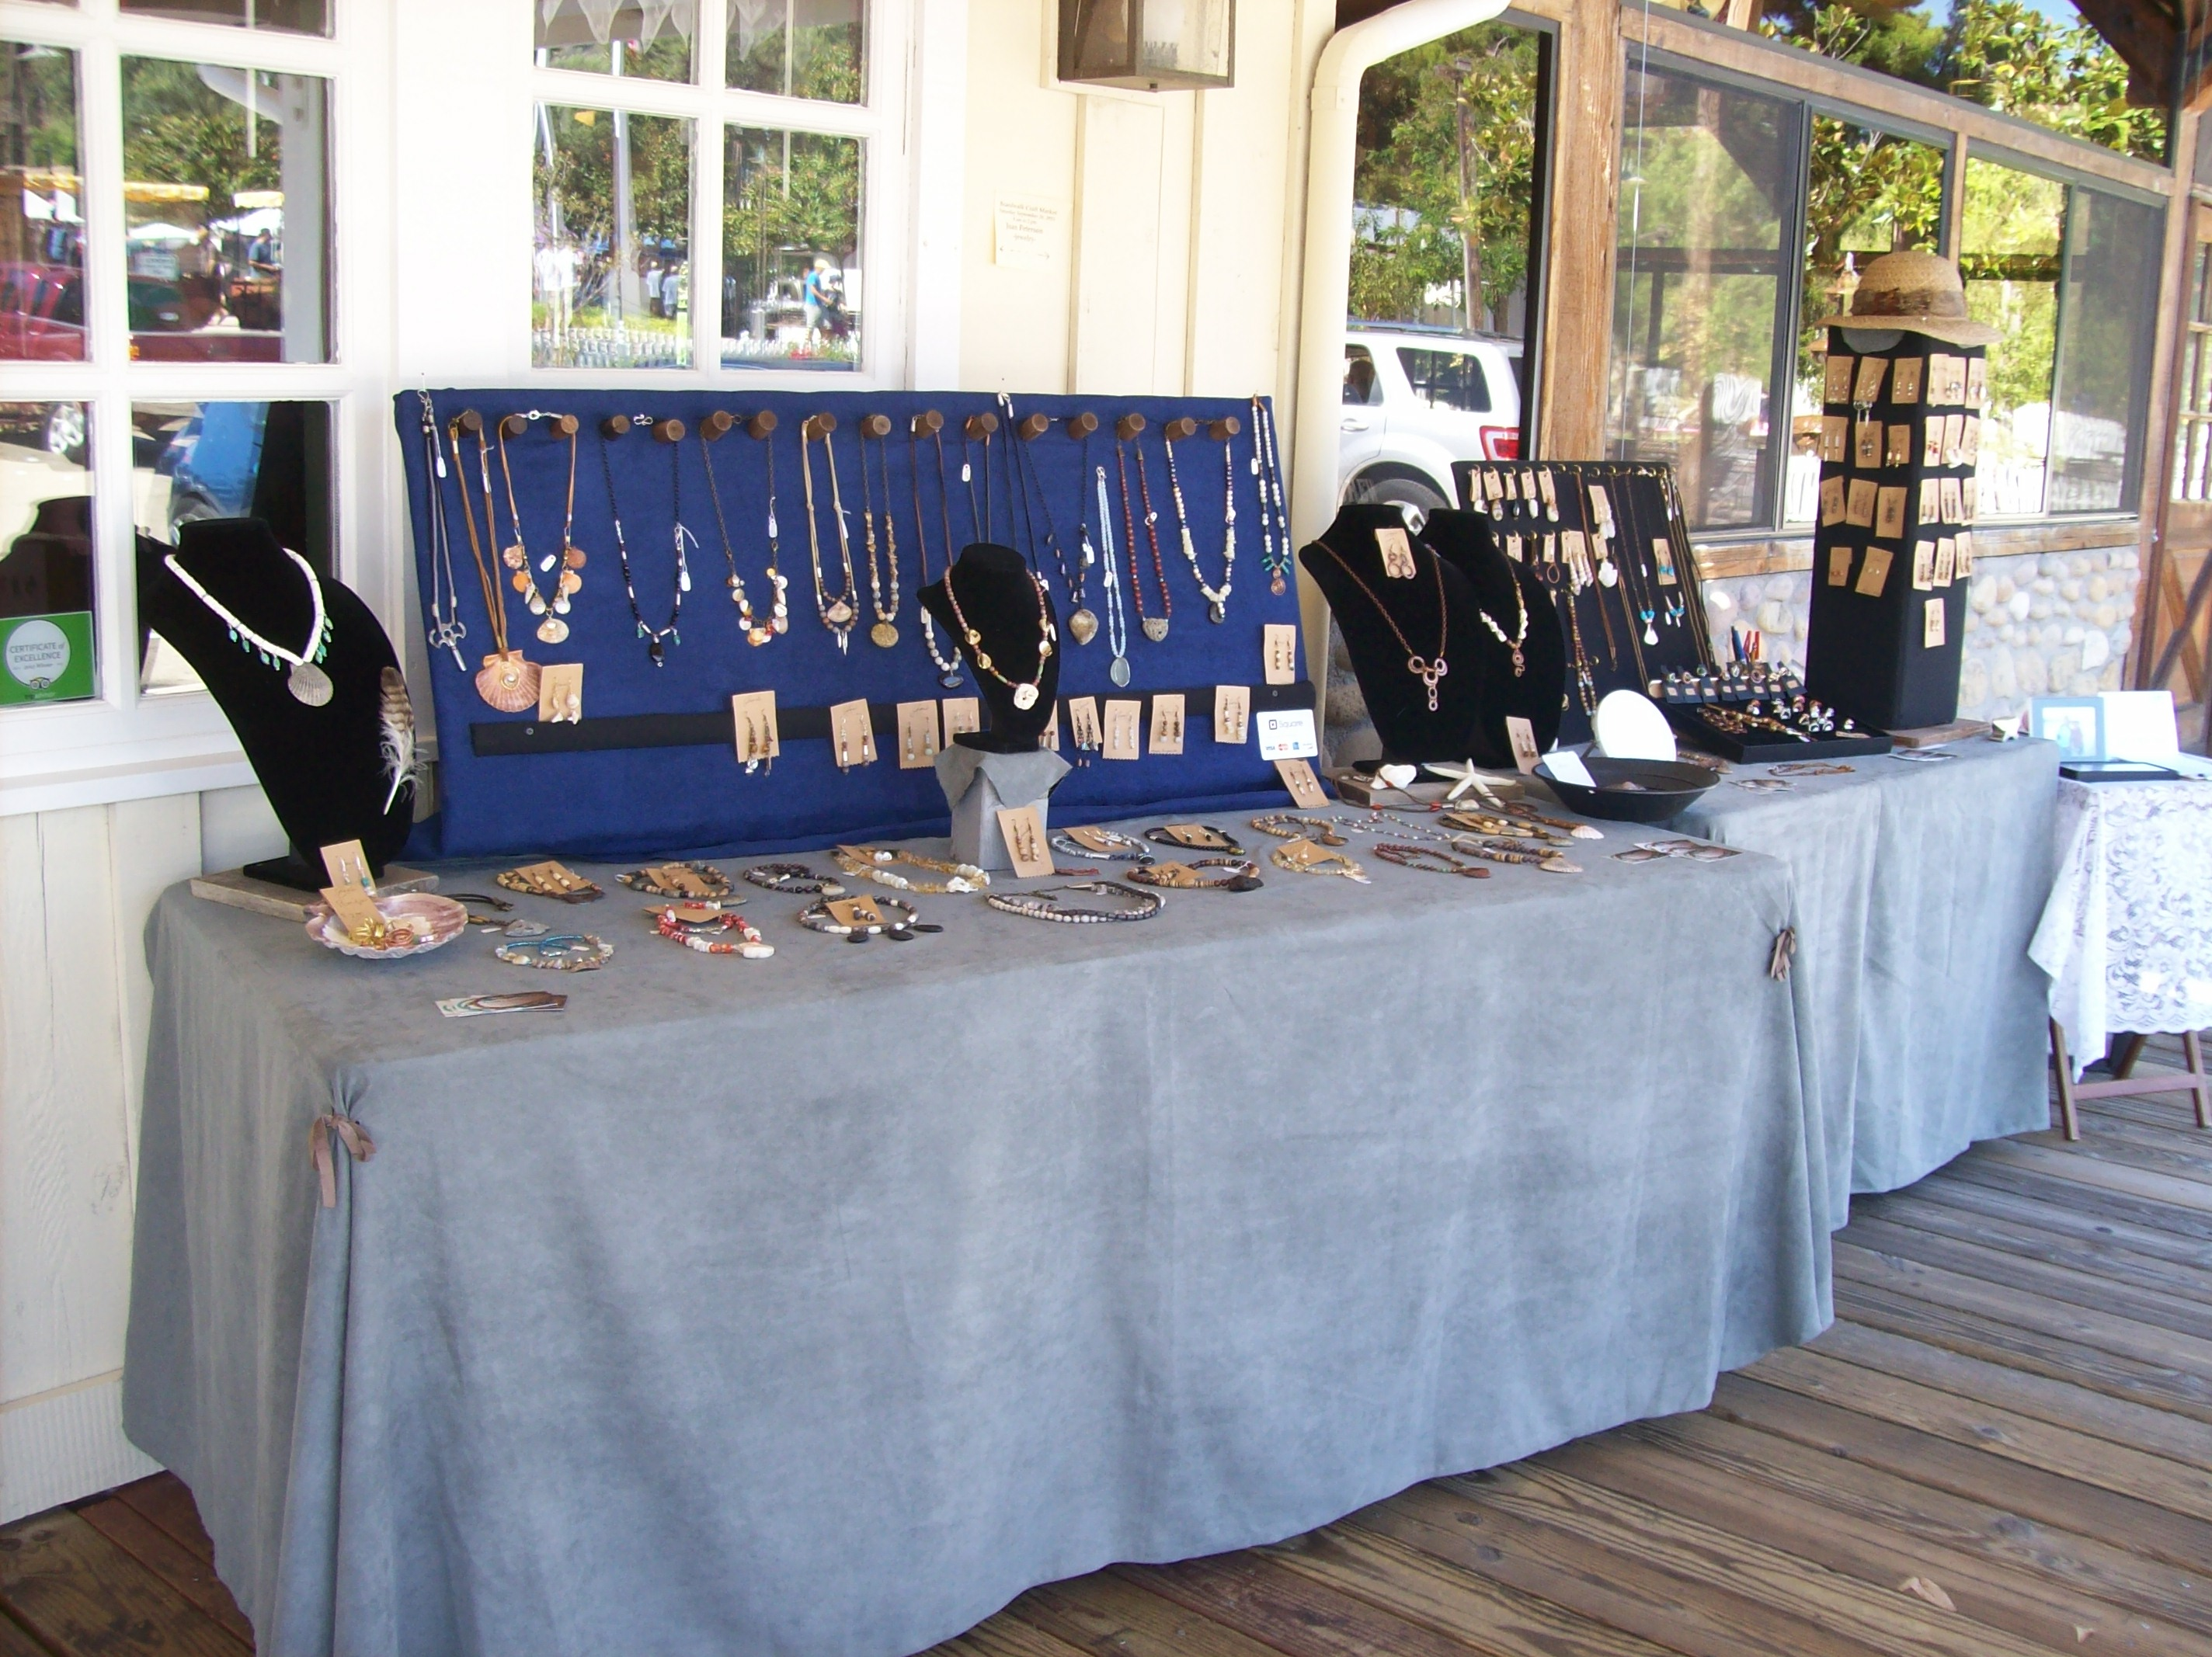 My Jewelry Booth Display: A Work in Progress